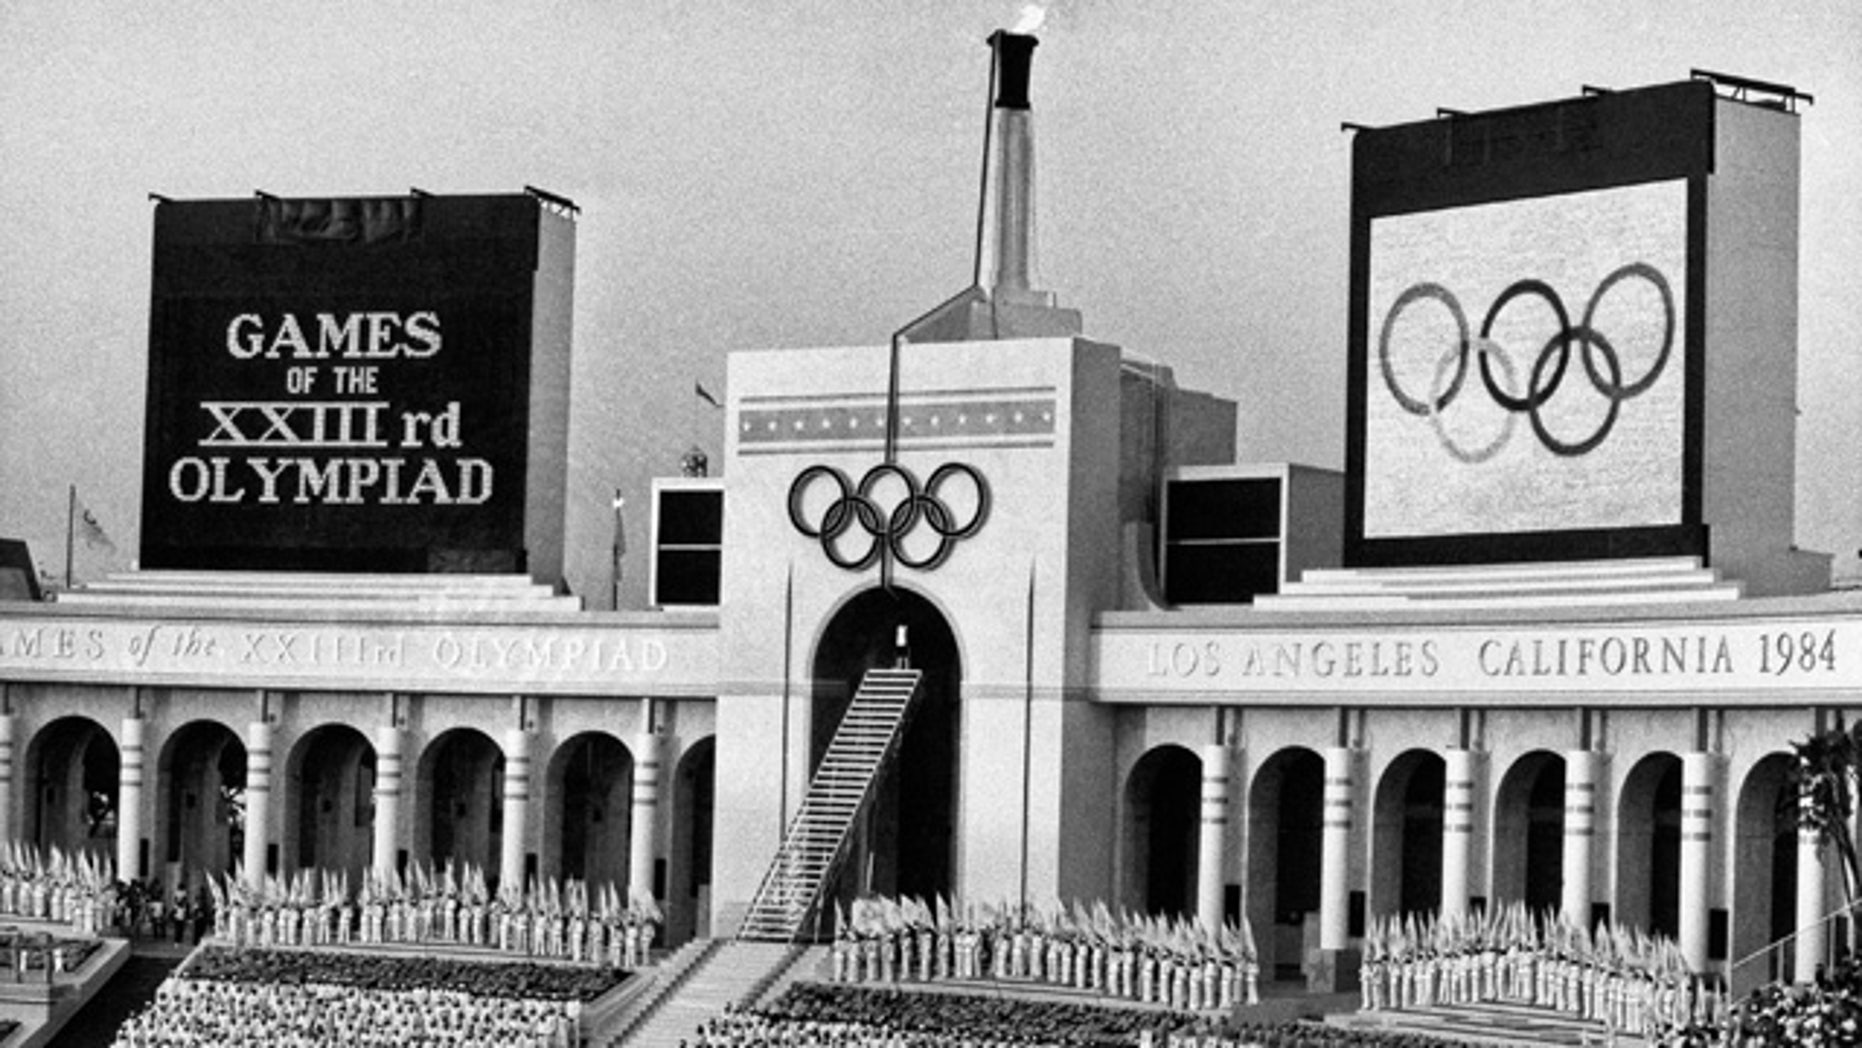 FILE - In this July 28, 1984, file photo, the Olympic flame is flanked by a scoreboard signifying the formal opening of the XXIII Olympiad after it was lit by Rafer Johnson during the opening ceremonies in the Los Angeles Memorial Coliseum. (AP Photo/Eric Risberg, File)